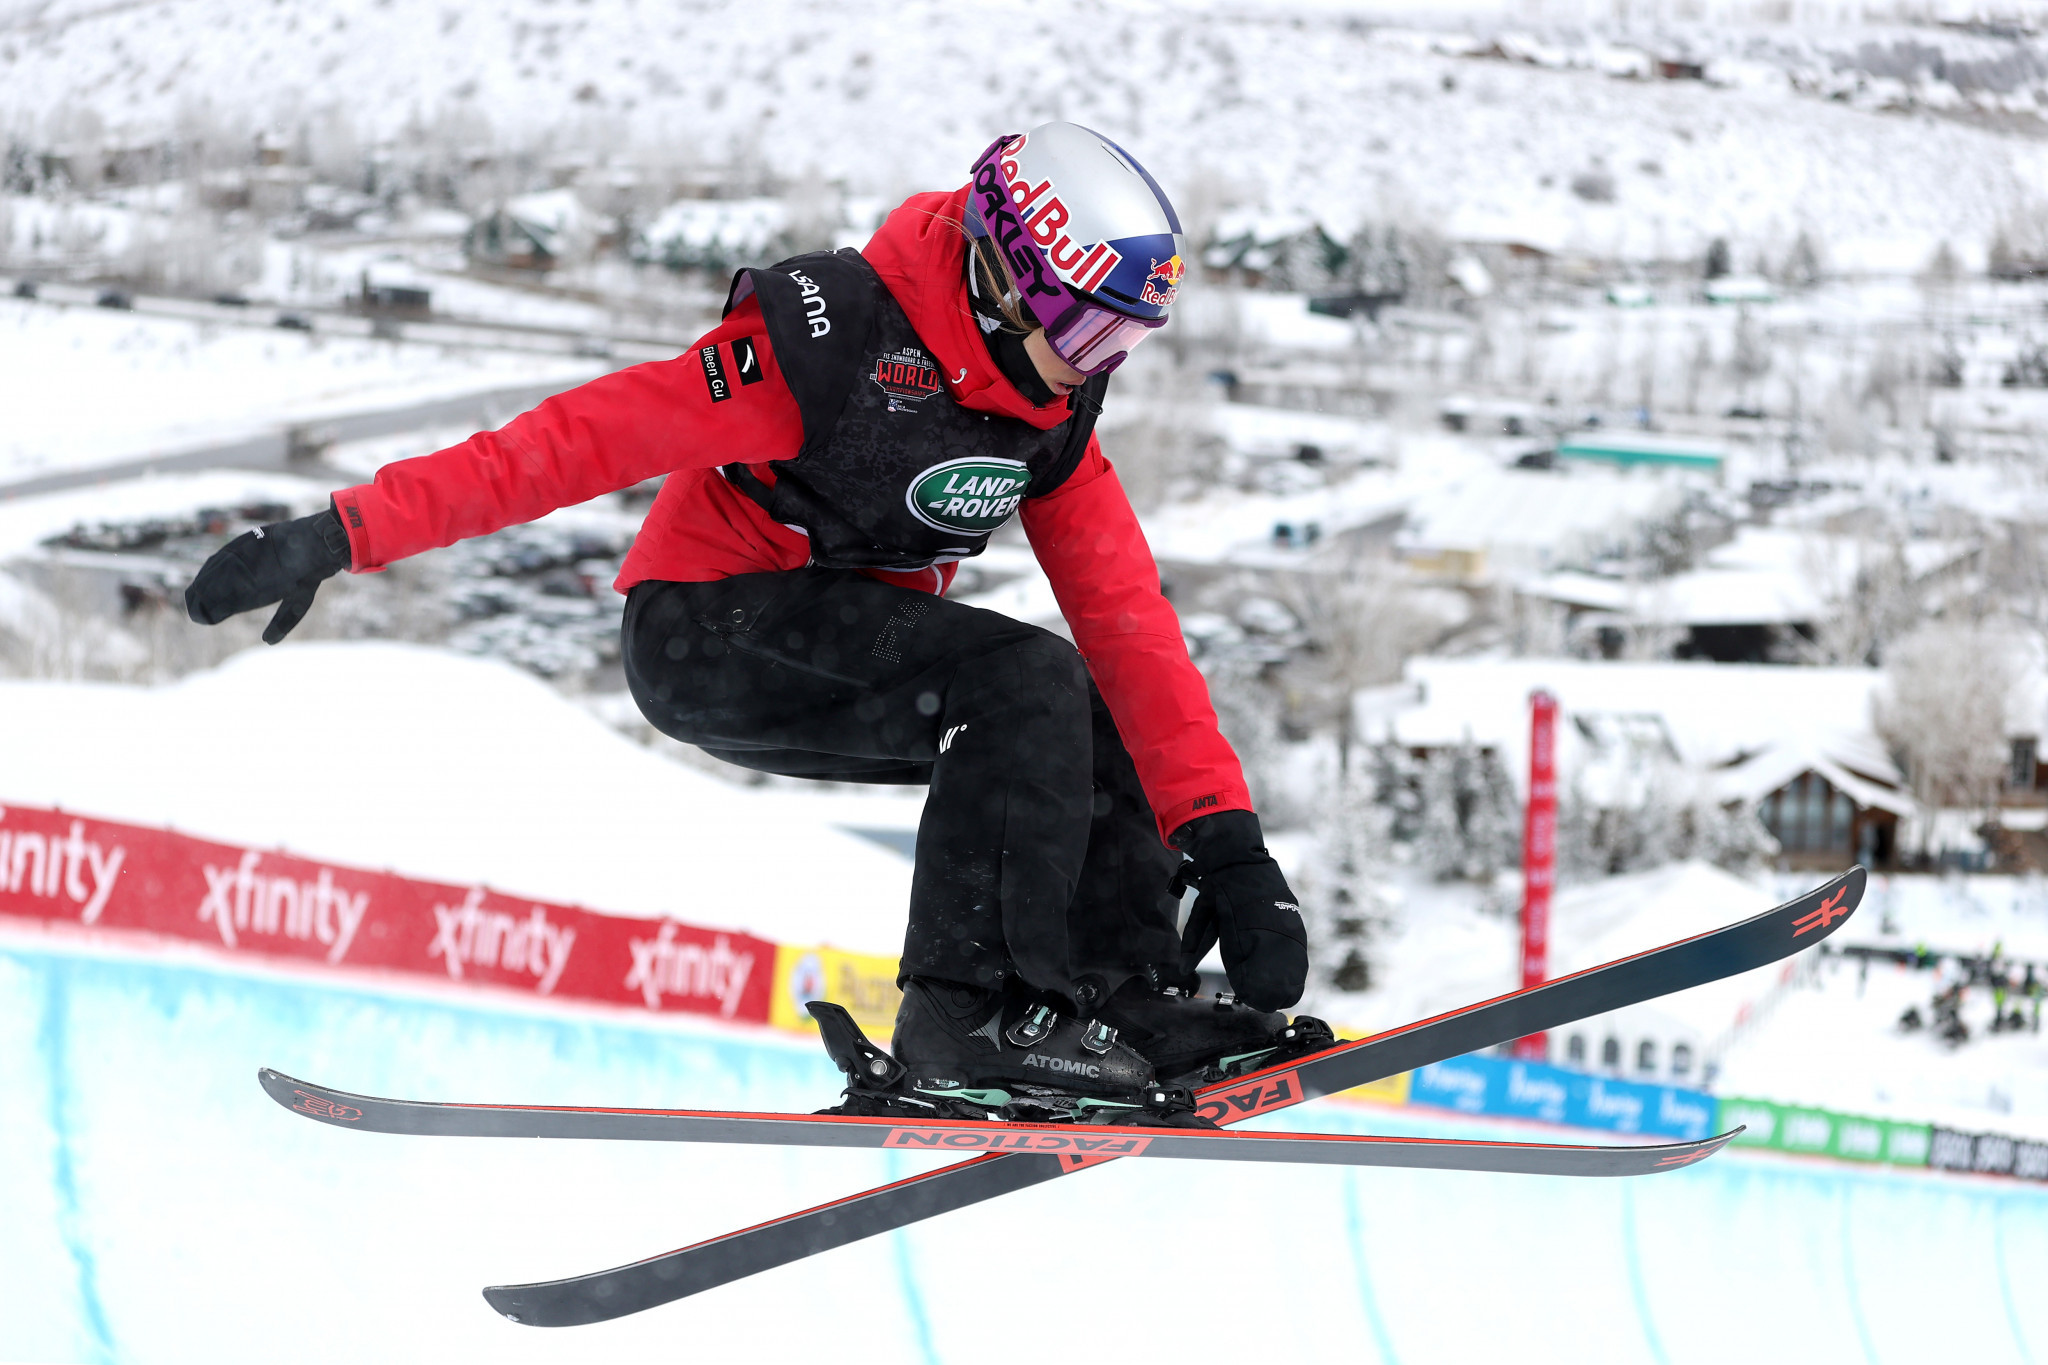 Gu claims second gold medal of FIS Snowboard and Freeski World Championships after winning ski slopestyle